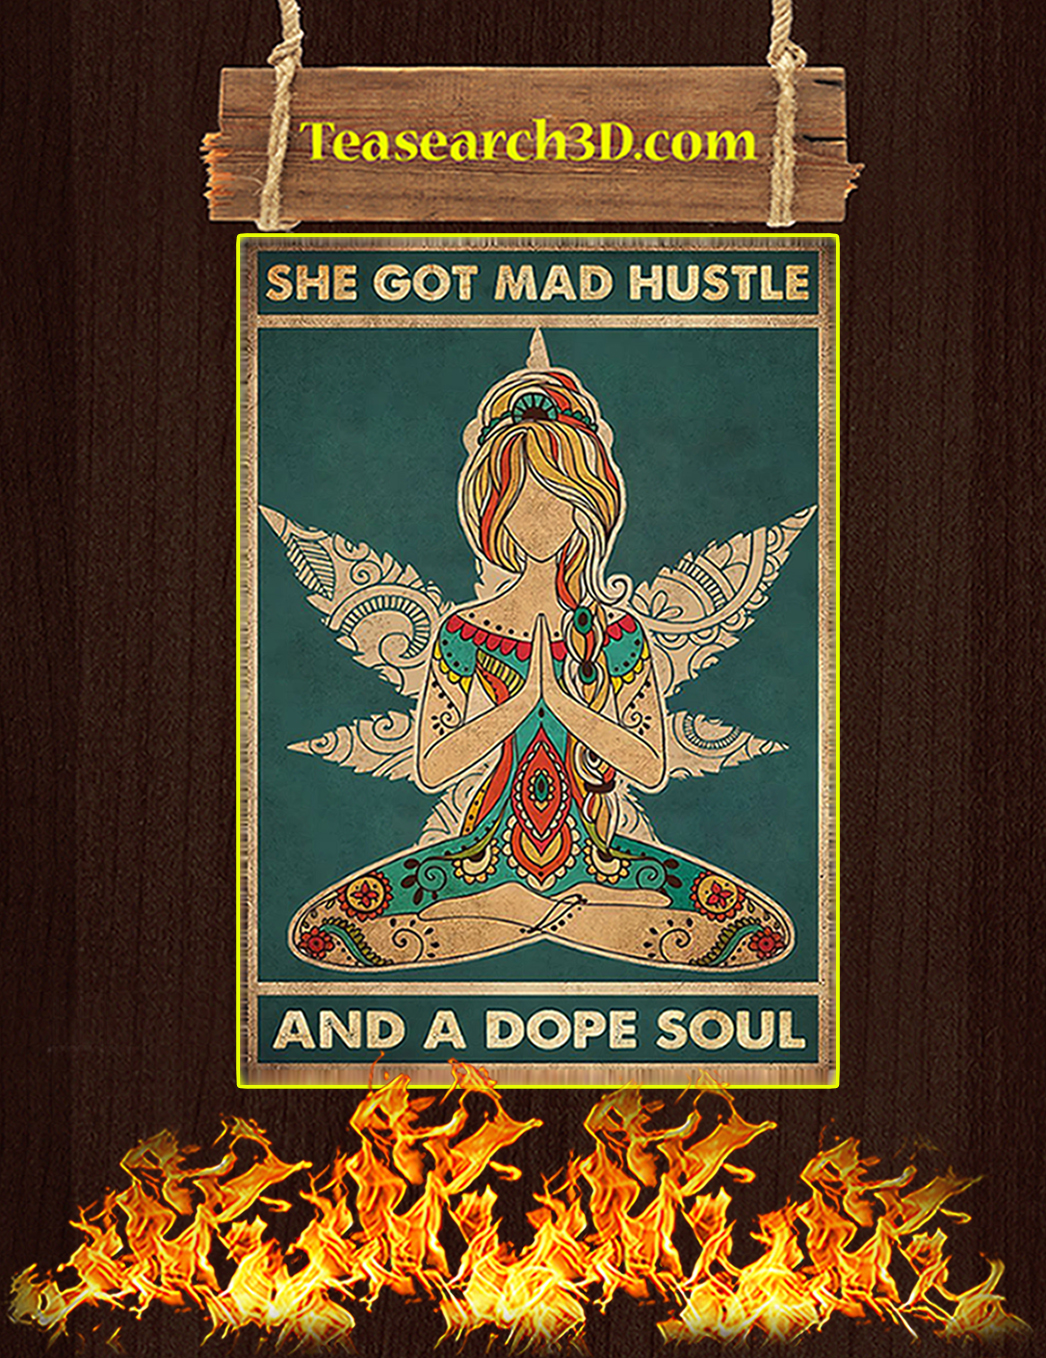 She got mad hustle and a dope soul poster A1